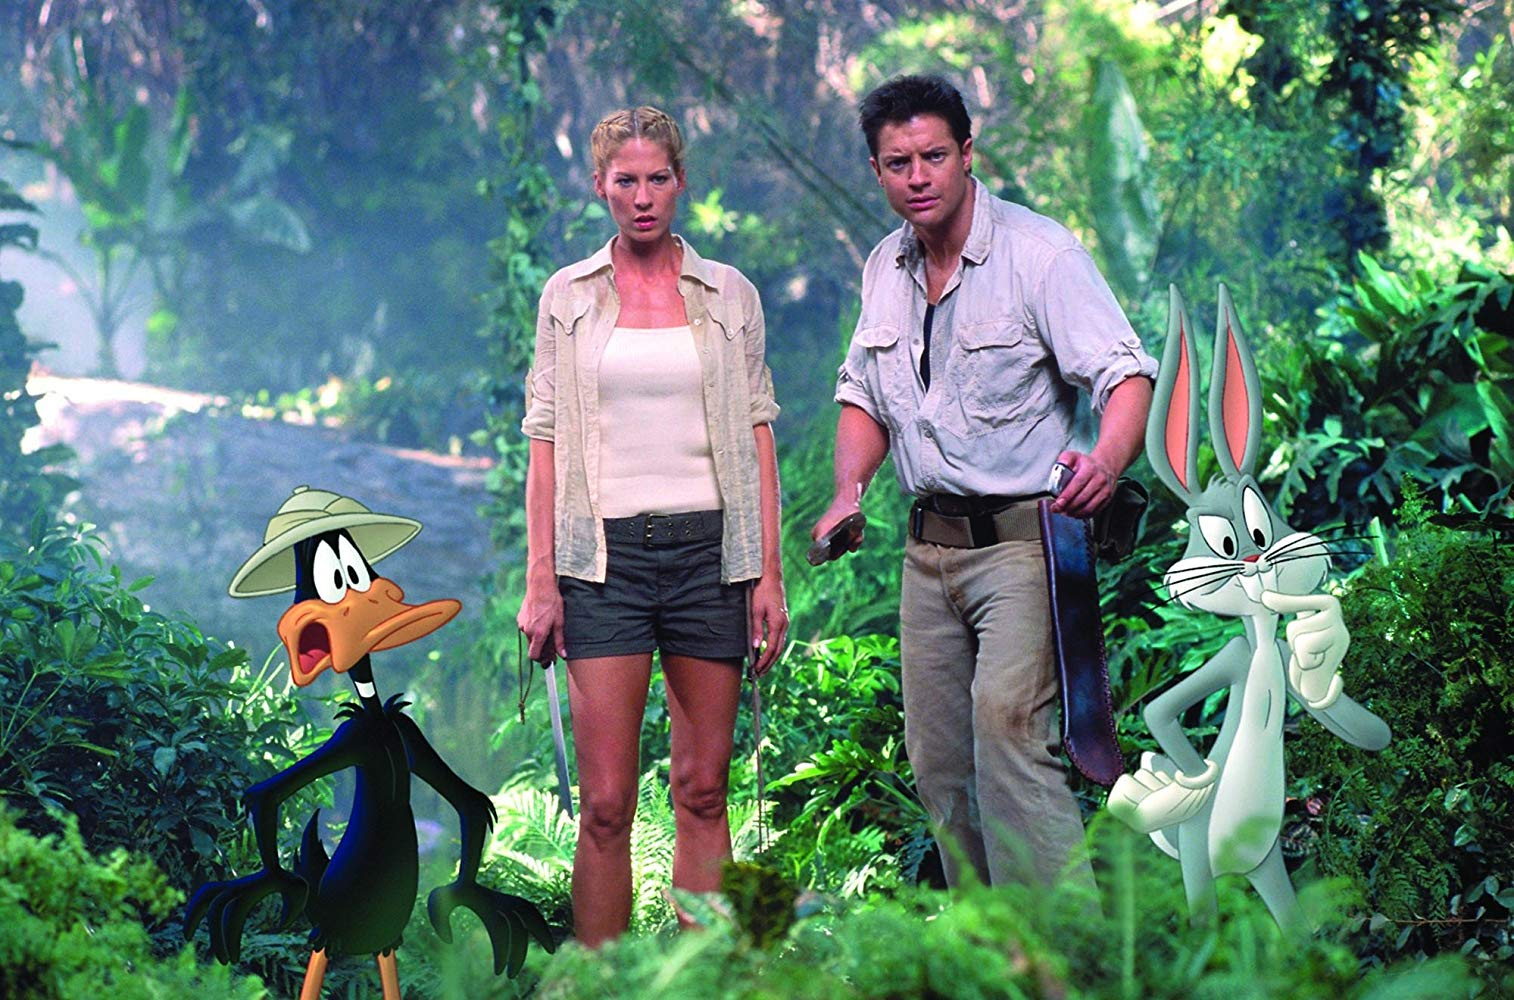 Jenna Elfman and Brendan Fraser, along with Daffy Duck and Bugs Bunny on an adventure in Africa in Looney Tunes: Back in Action (2003)